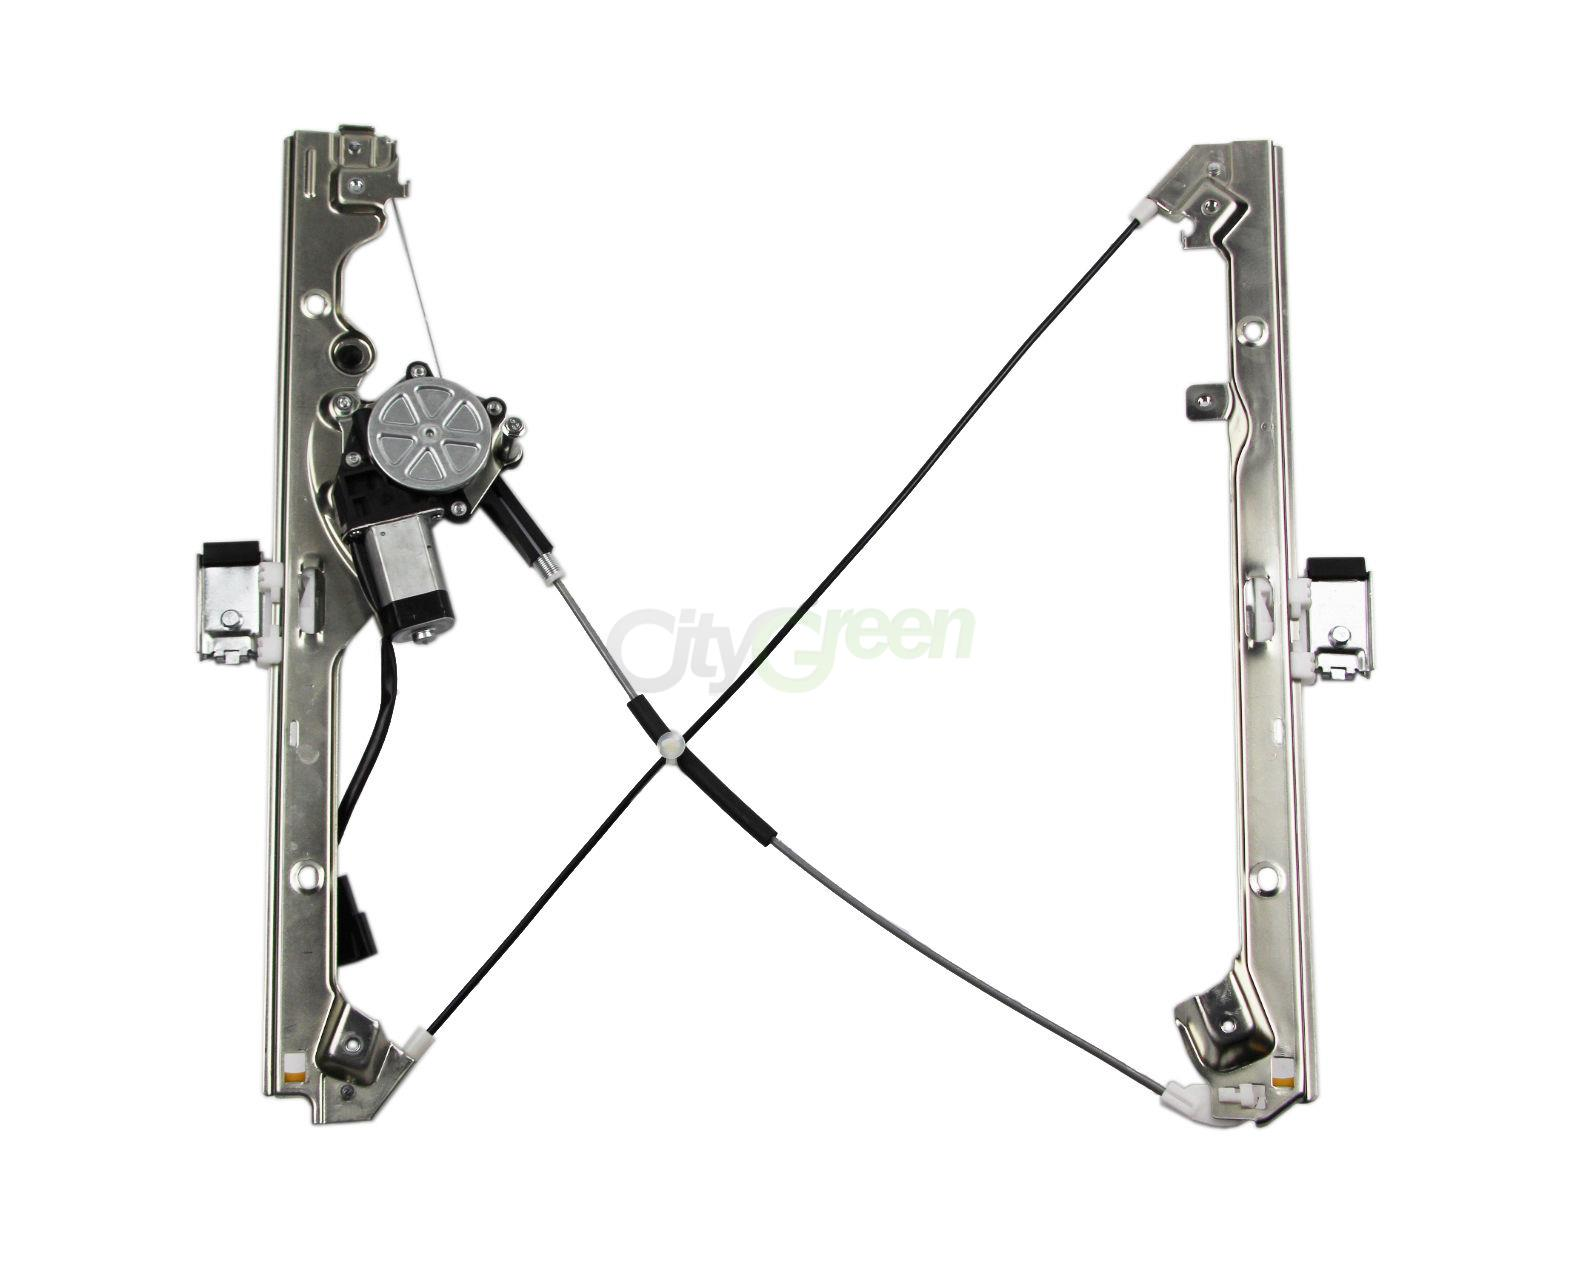 Power Window Regulator Motor Front Passenger Side For Chevy Silverado Gmc Sierra Auctions